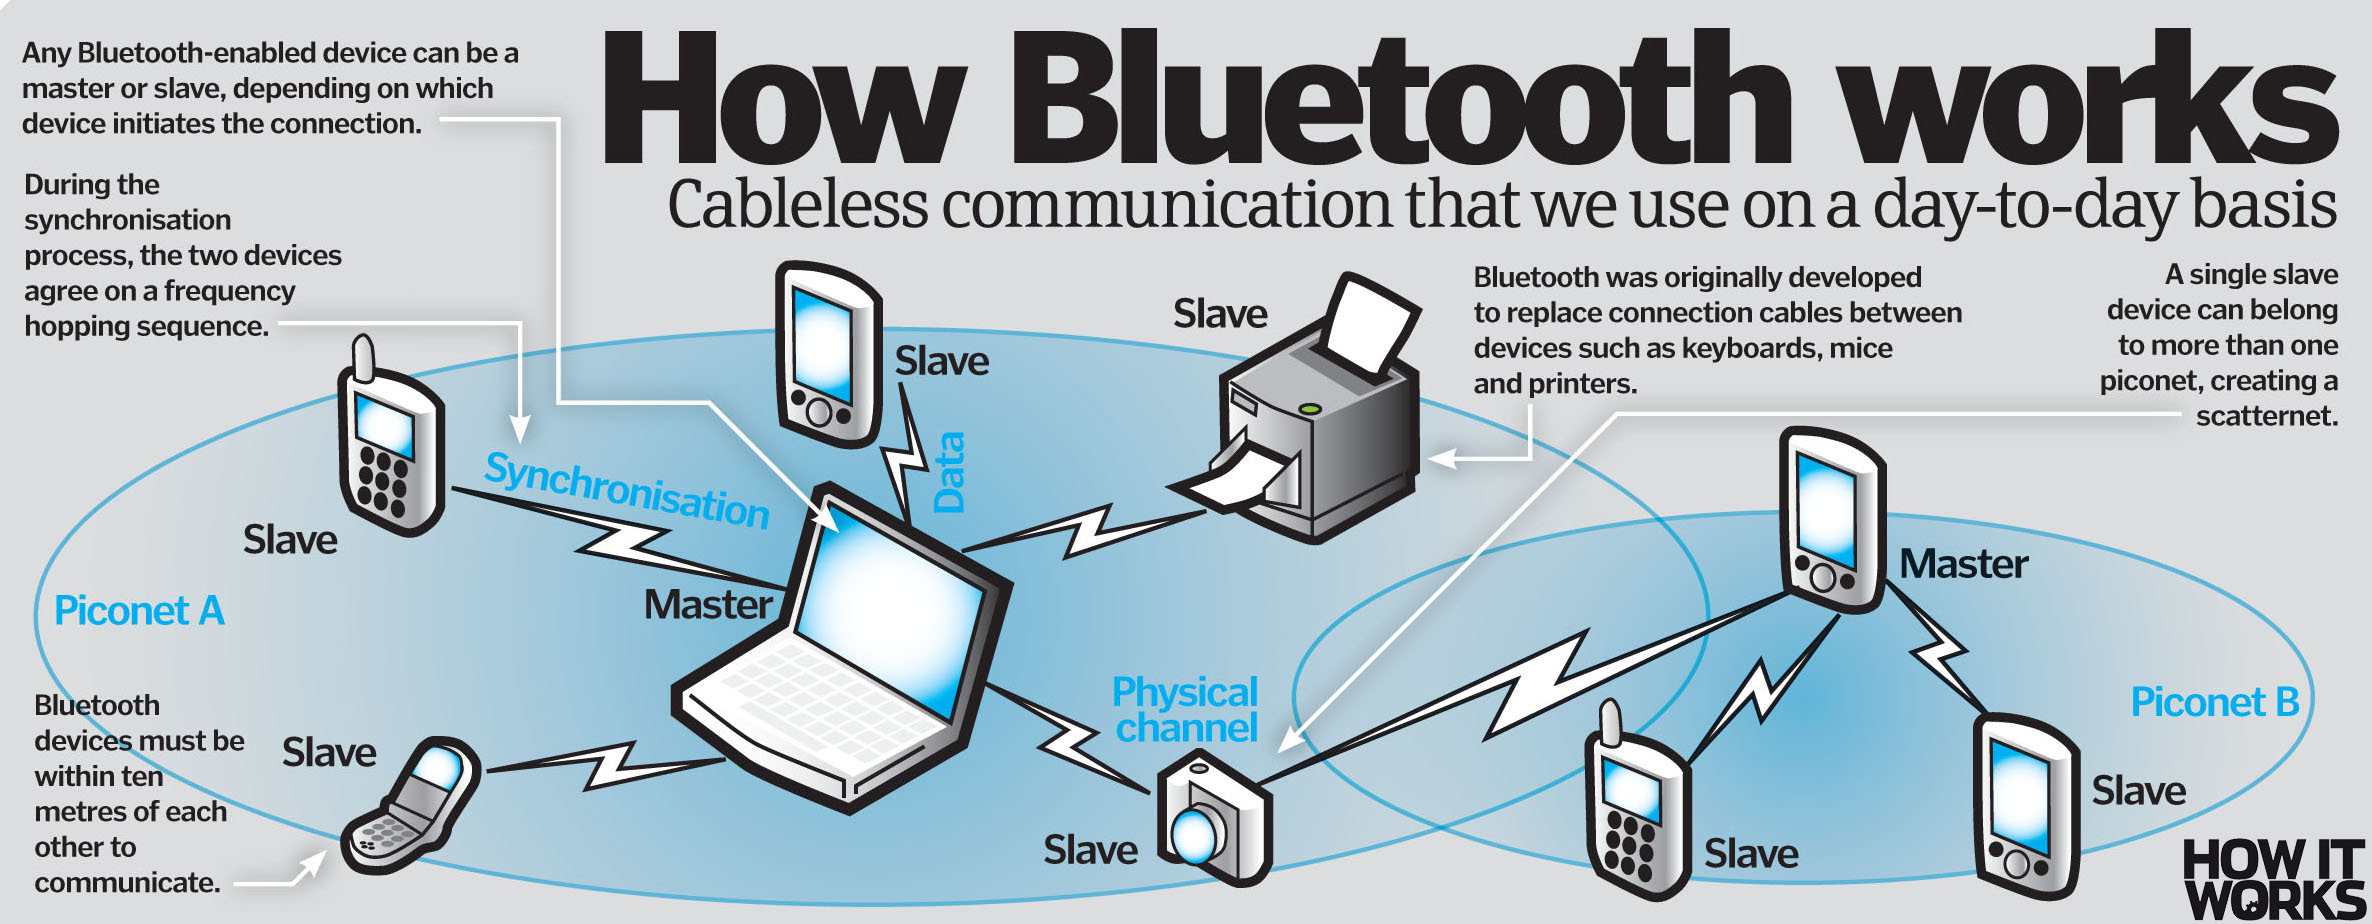 How Does Bluetooth Work?  How It Works